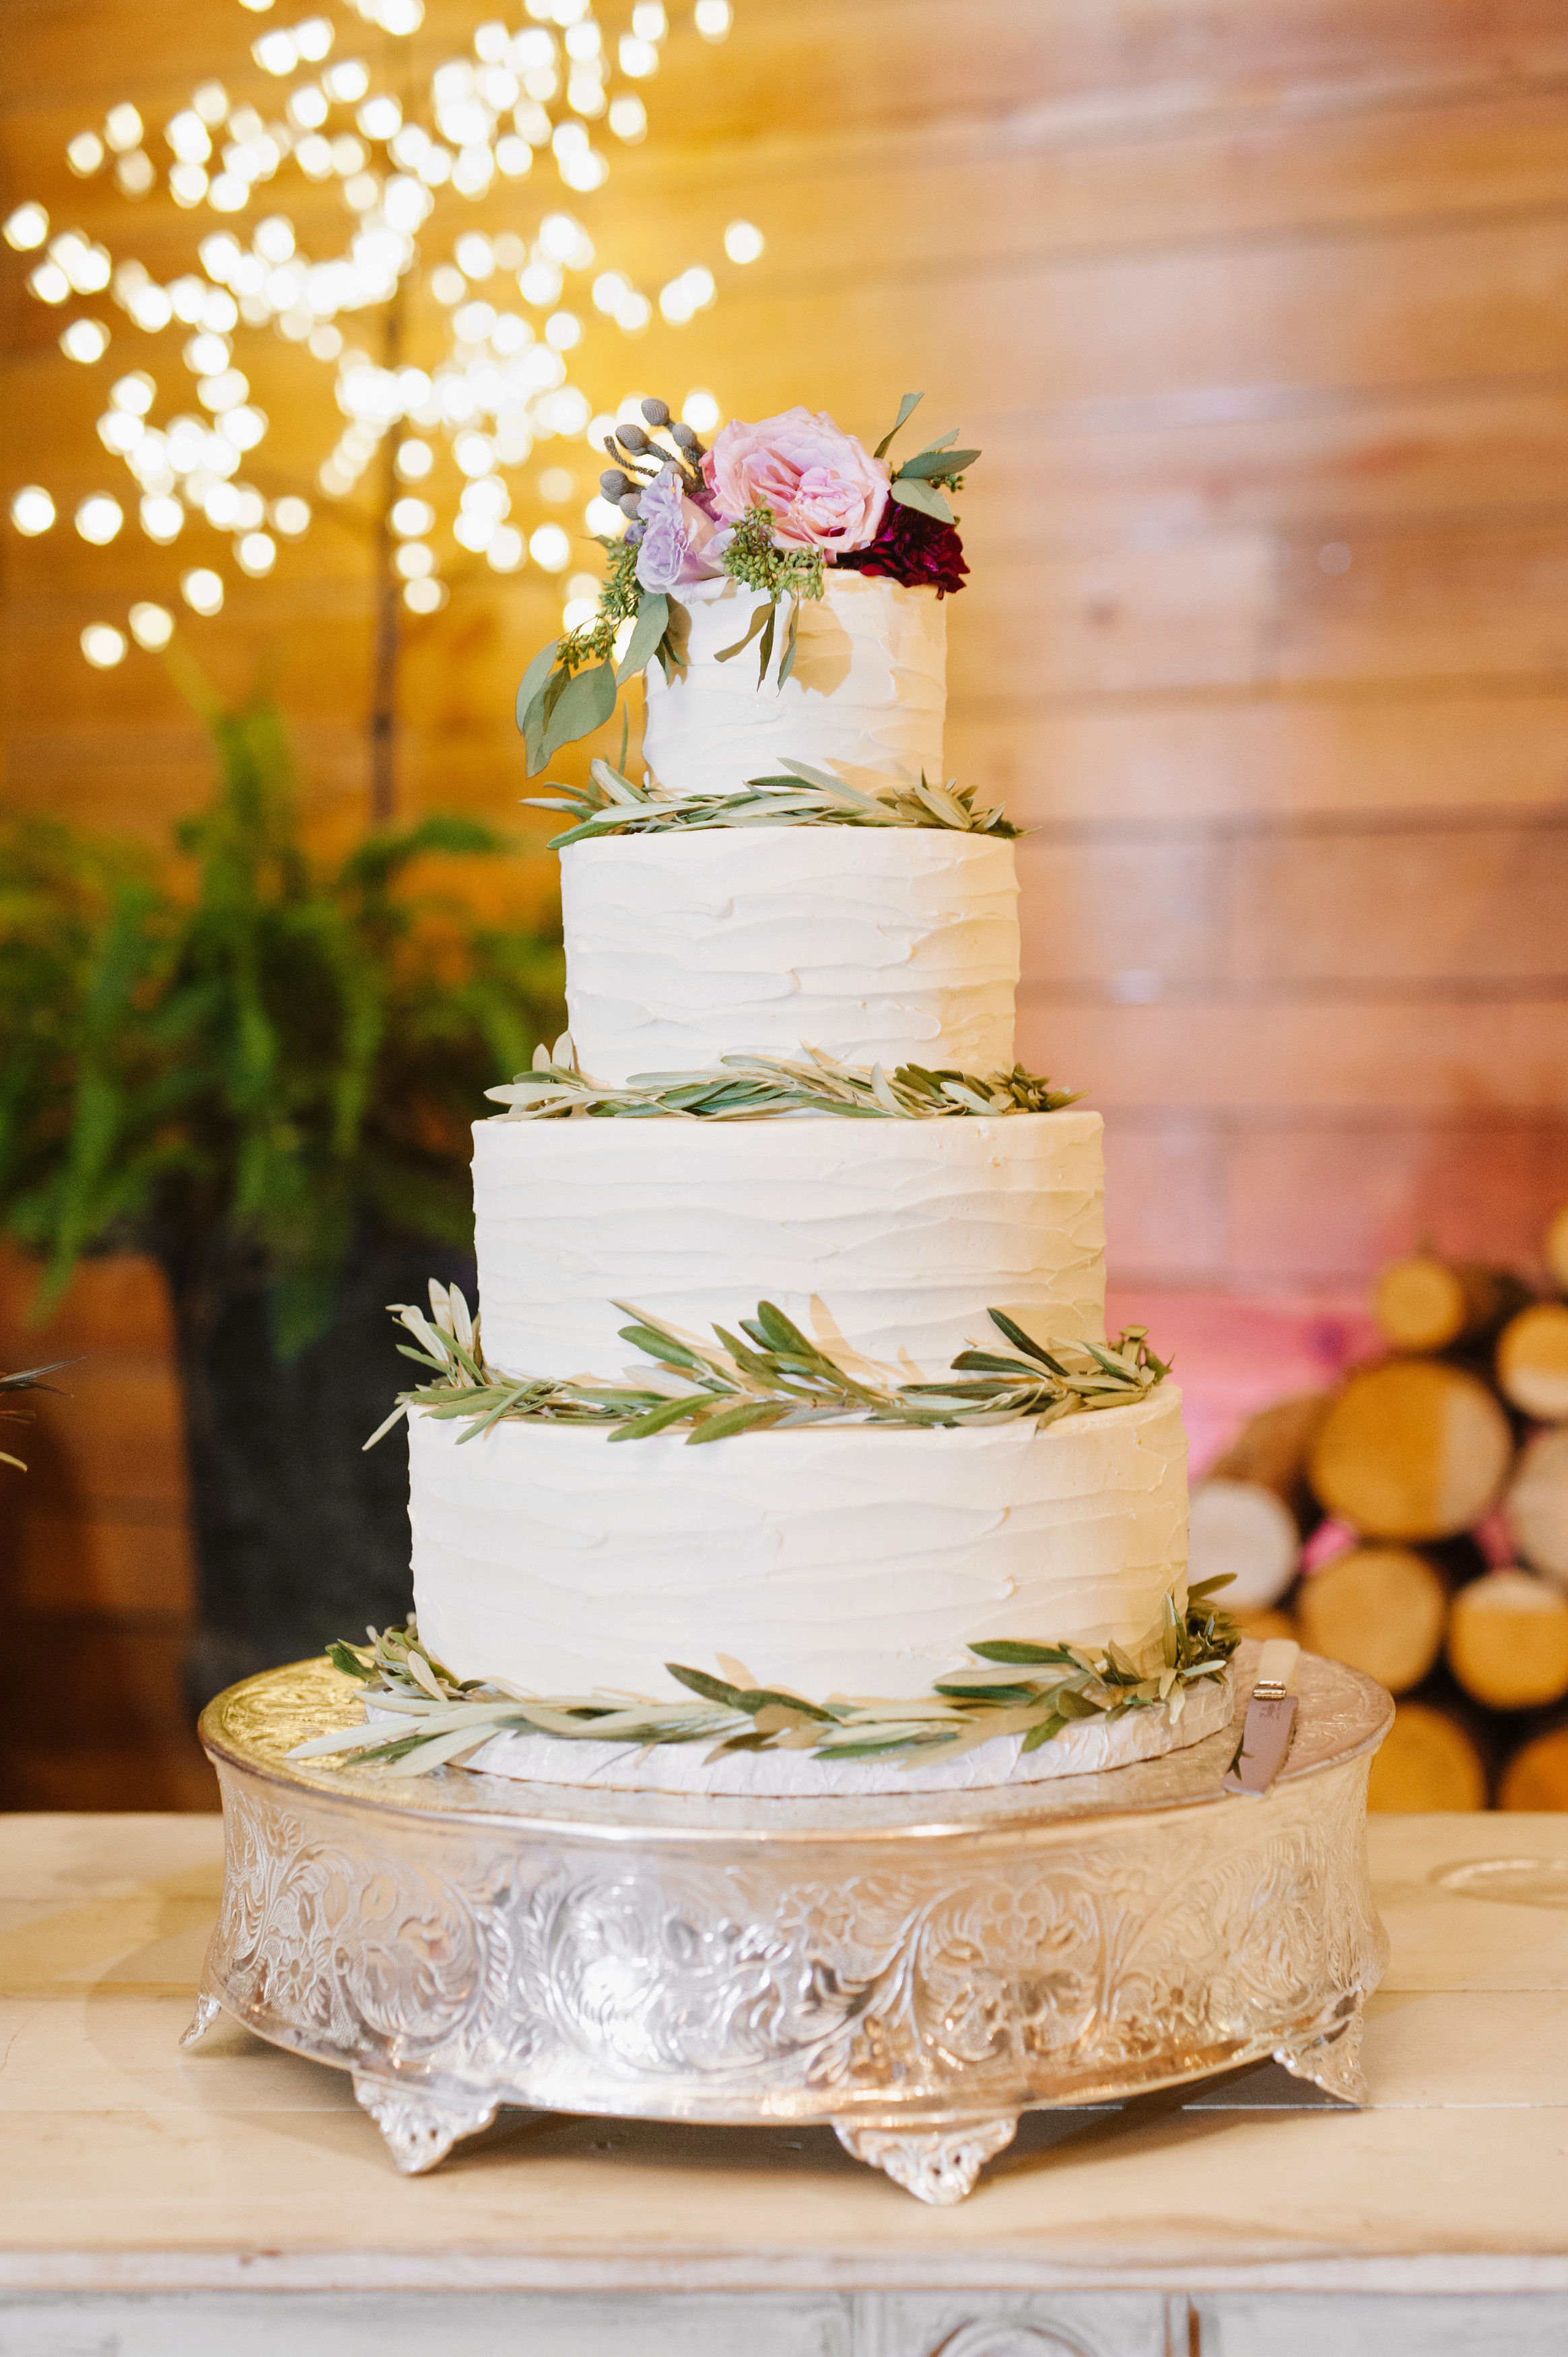 rustic_textured_butter_cream_wedding_cake_sugarbeesweets.jpg